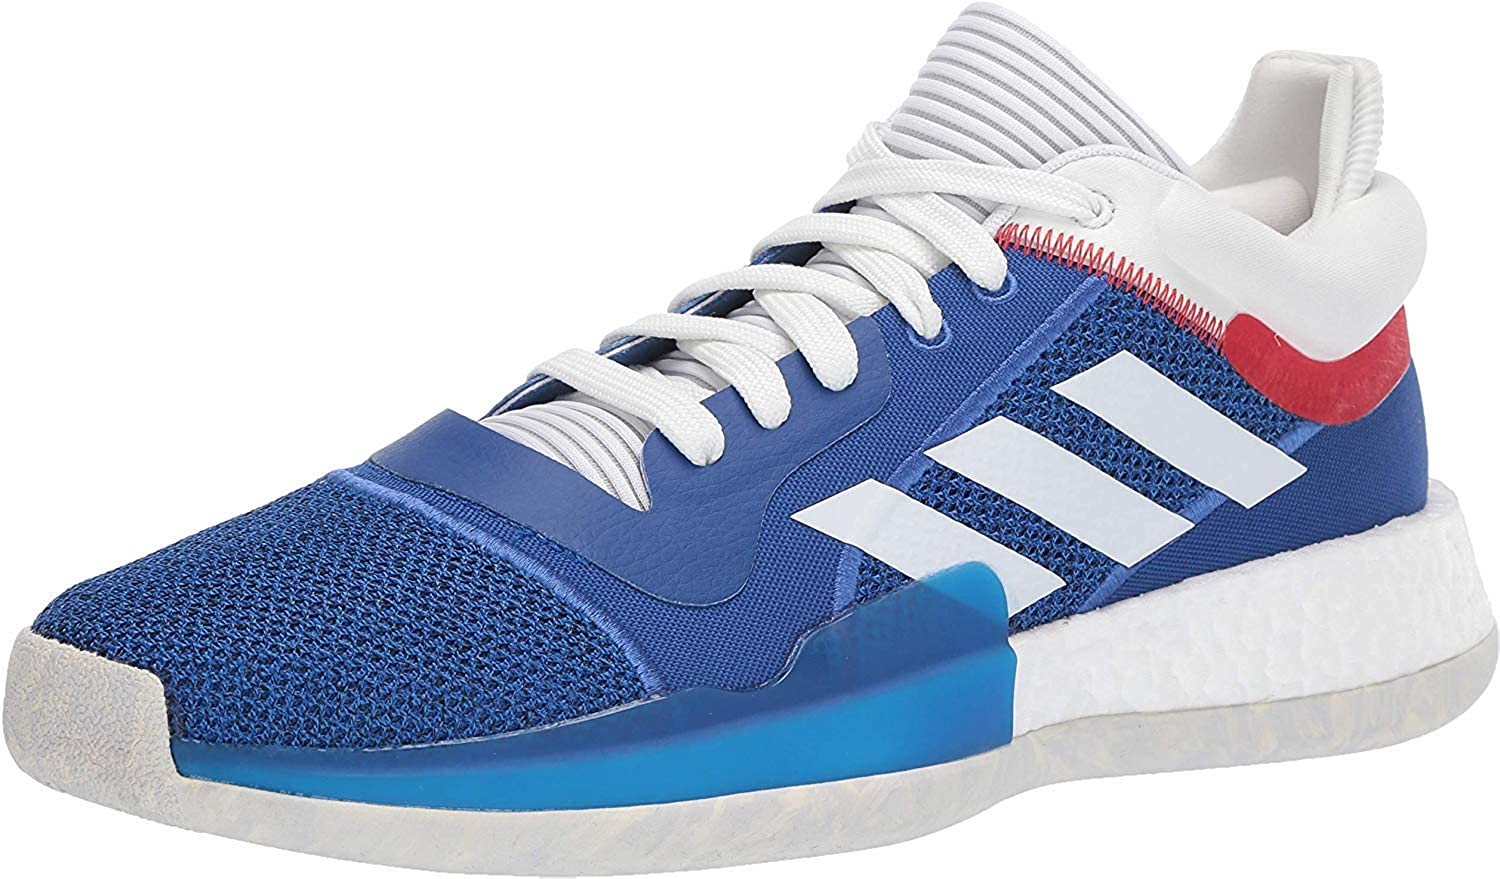 adidas Men's Marquee Boost Low National products Price reduction